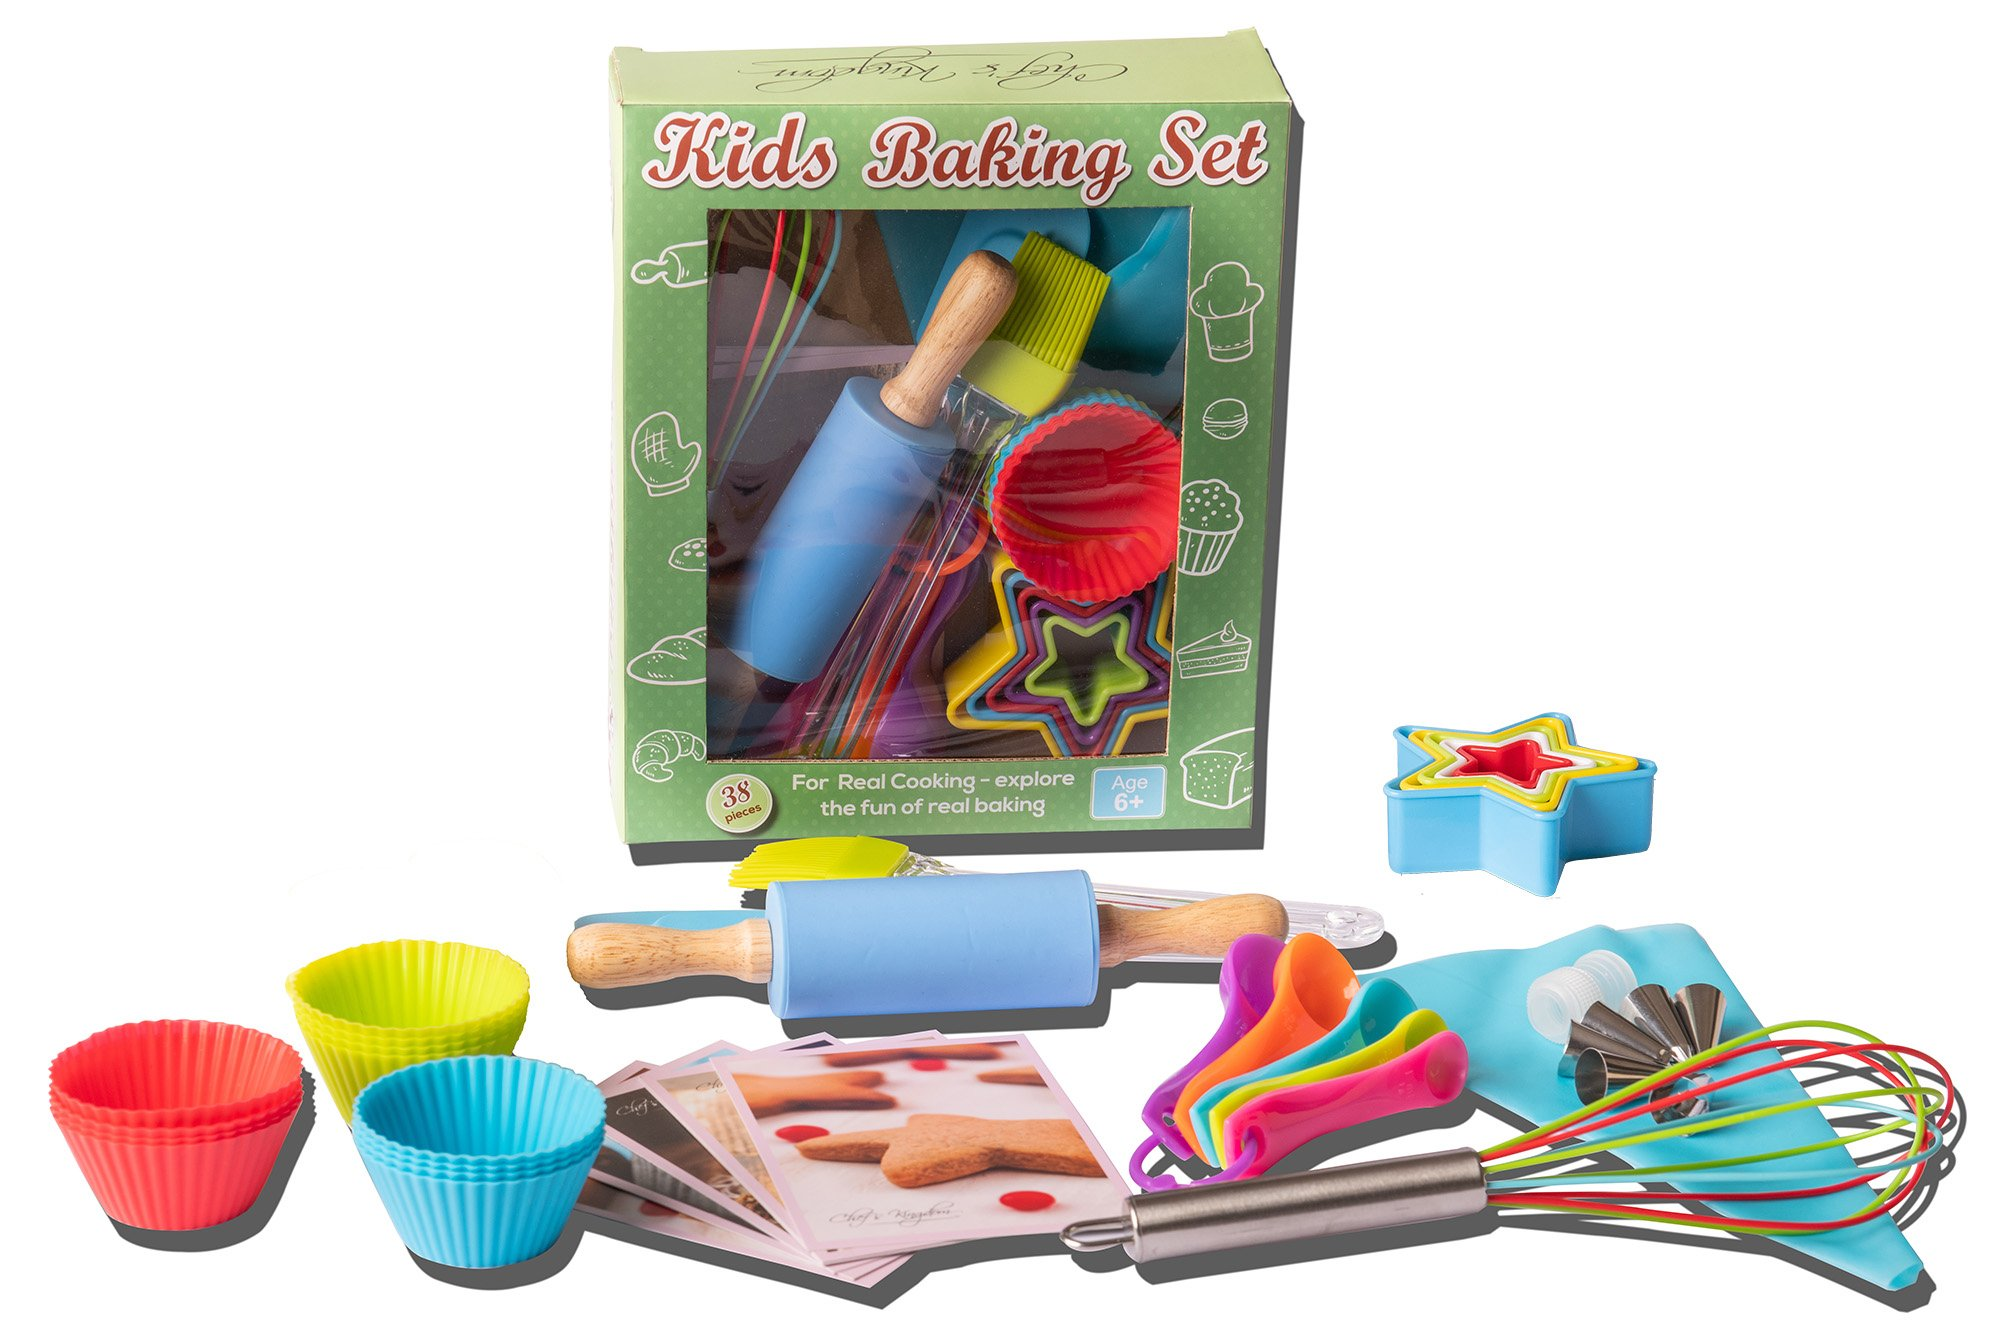 Riki's kingdom kids baking set 2 COMPLETE 38-PIECE BAKING SET! includes everything needed to bake with your children- Comes with 12 silicon baking cups, 1 spatula, 1 pastry brush, 5 measuring spoon, 1 rolling pin, 1 whisk, 5 star shape cookie cutters, piping bag , 6 piping nozzles , coupler and 5 recipe cards FAMILY-FRIENDLY FUN! Complete set ,It's not complicated- every convenience you can ask for and more! Microwave safe, flexible, comfortable for little hands, rust-free, no need to grease pan, withstands heat of melted sugar; sauces and creams don't stick, and the items are reusable to makes your kitchen a little greener STORE SMALL - BAKE BIG - plastic cookie cutters can be nested to save space, the piping bag and apron can be folded up neatly, while silicone items are flexible enough that you can fold it up for easy storage in small areas and they jump right back into shape when unfolded